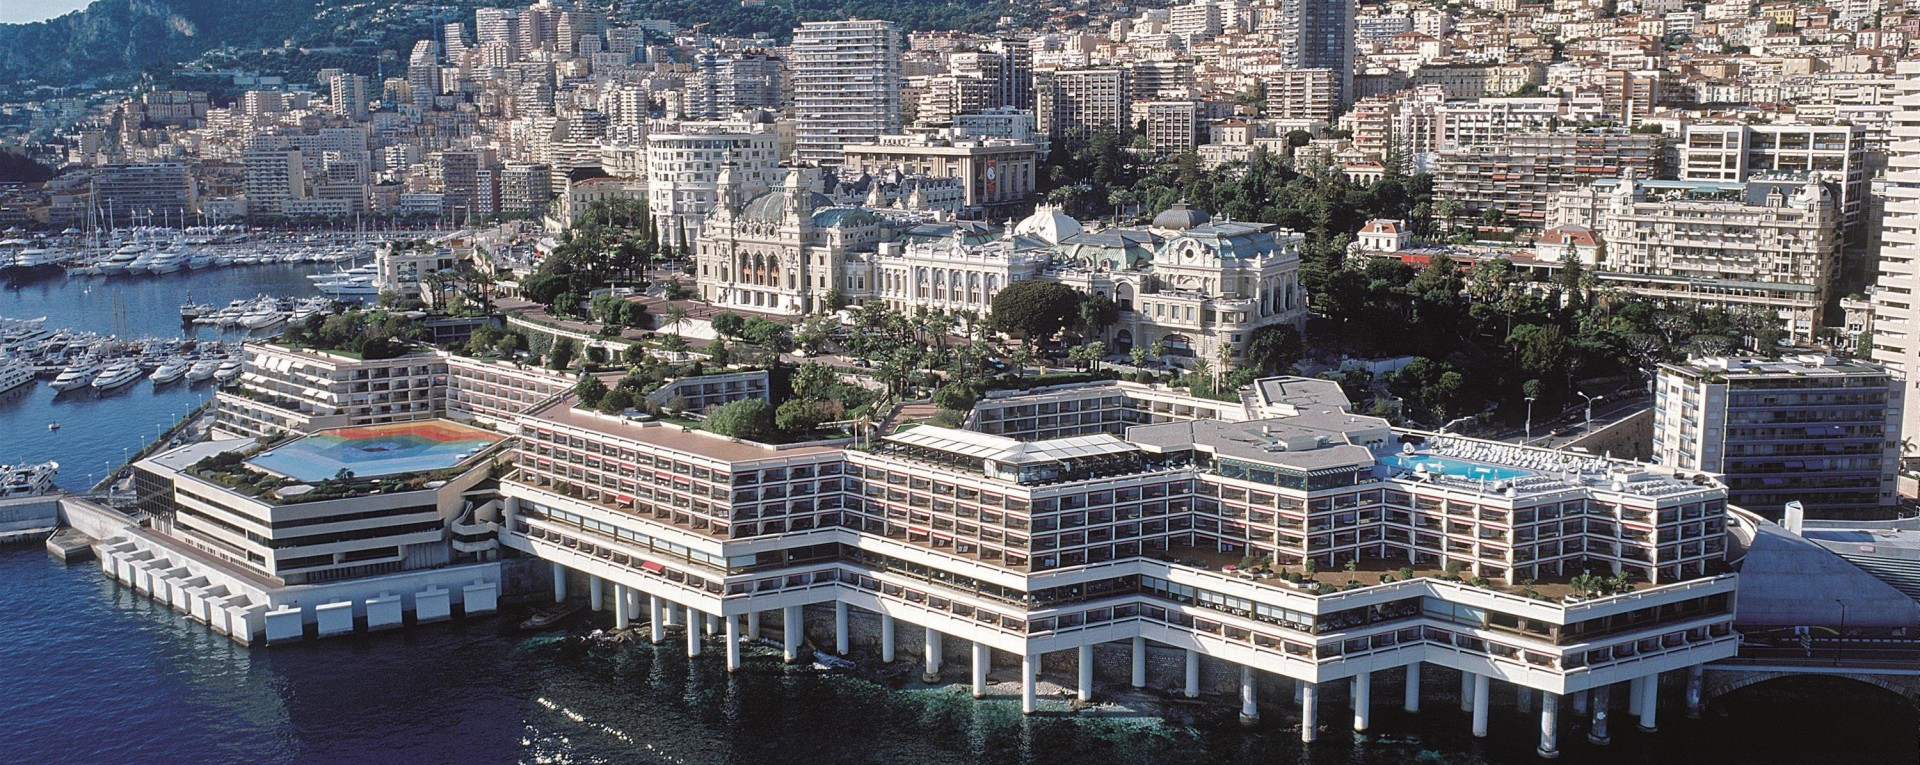 Image result for fairmont monte carlo hotel